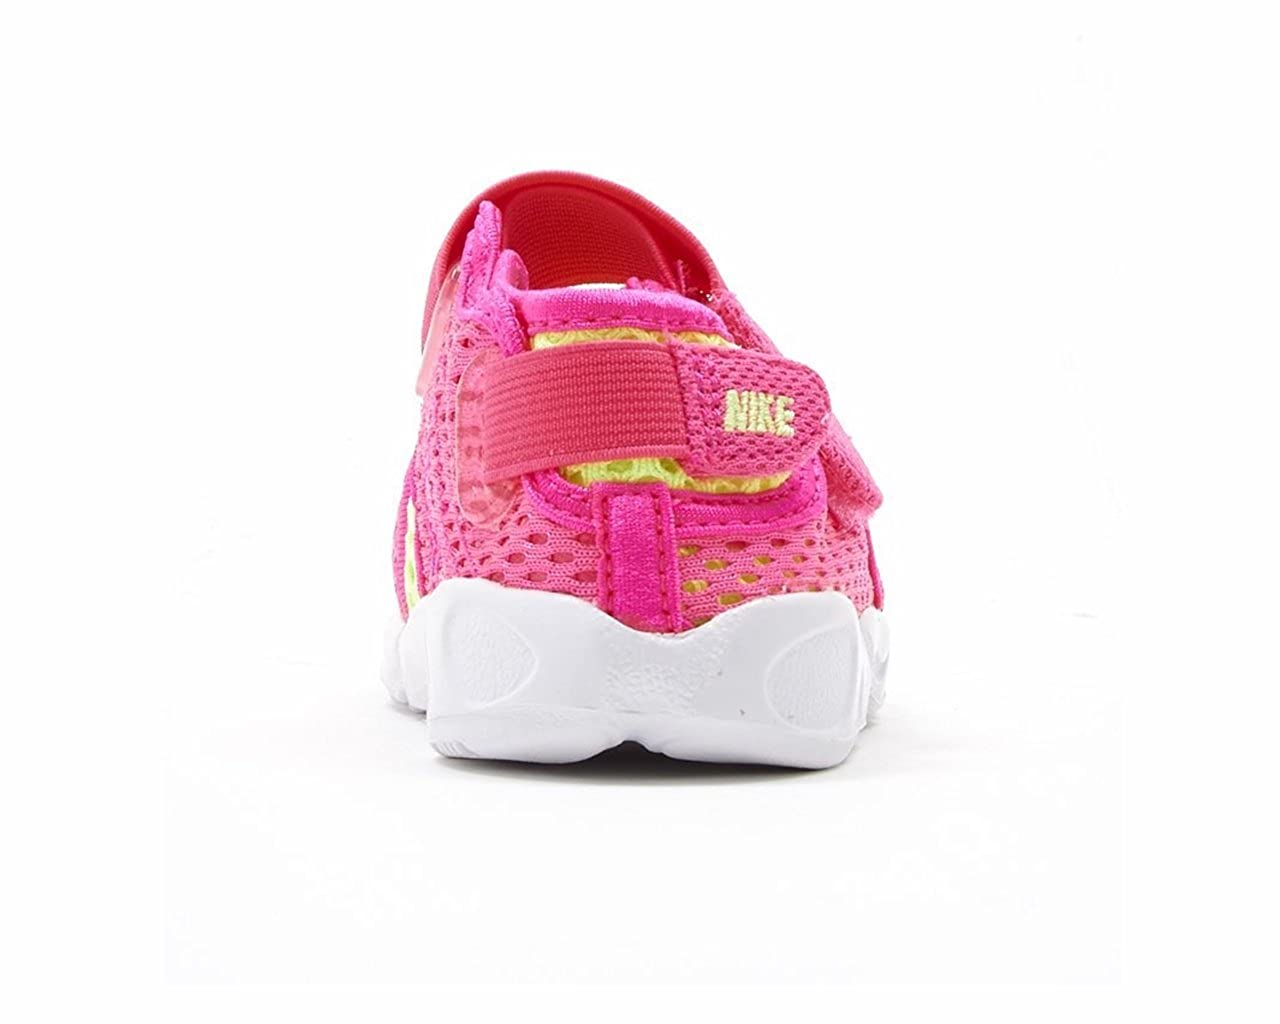 83670fa40c9b NIKE Baby Boys  Little Rift Br (TD) Low-Top Sneakers Pink Size  9.5 Child  UK  Amazon.co.uk  Shoes   Bags